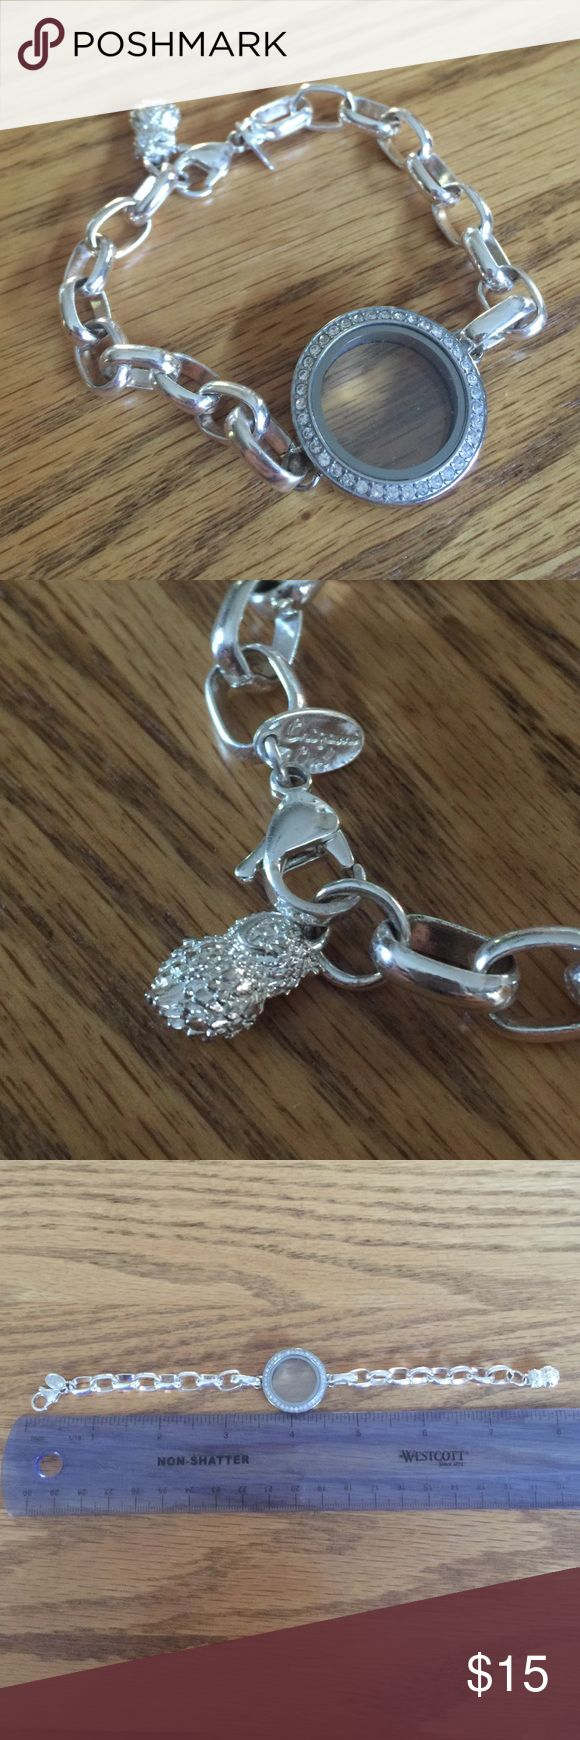 Origami owl bracelet Only worn once or twice! Like new. Comes from a smoke free, pet free home.  Origami owl Jewelry Bracelets